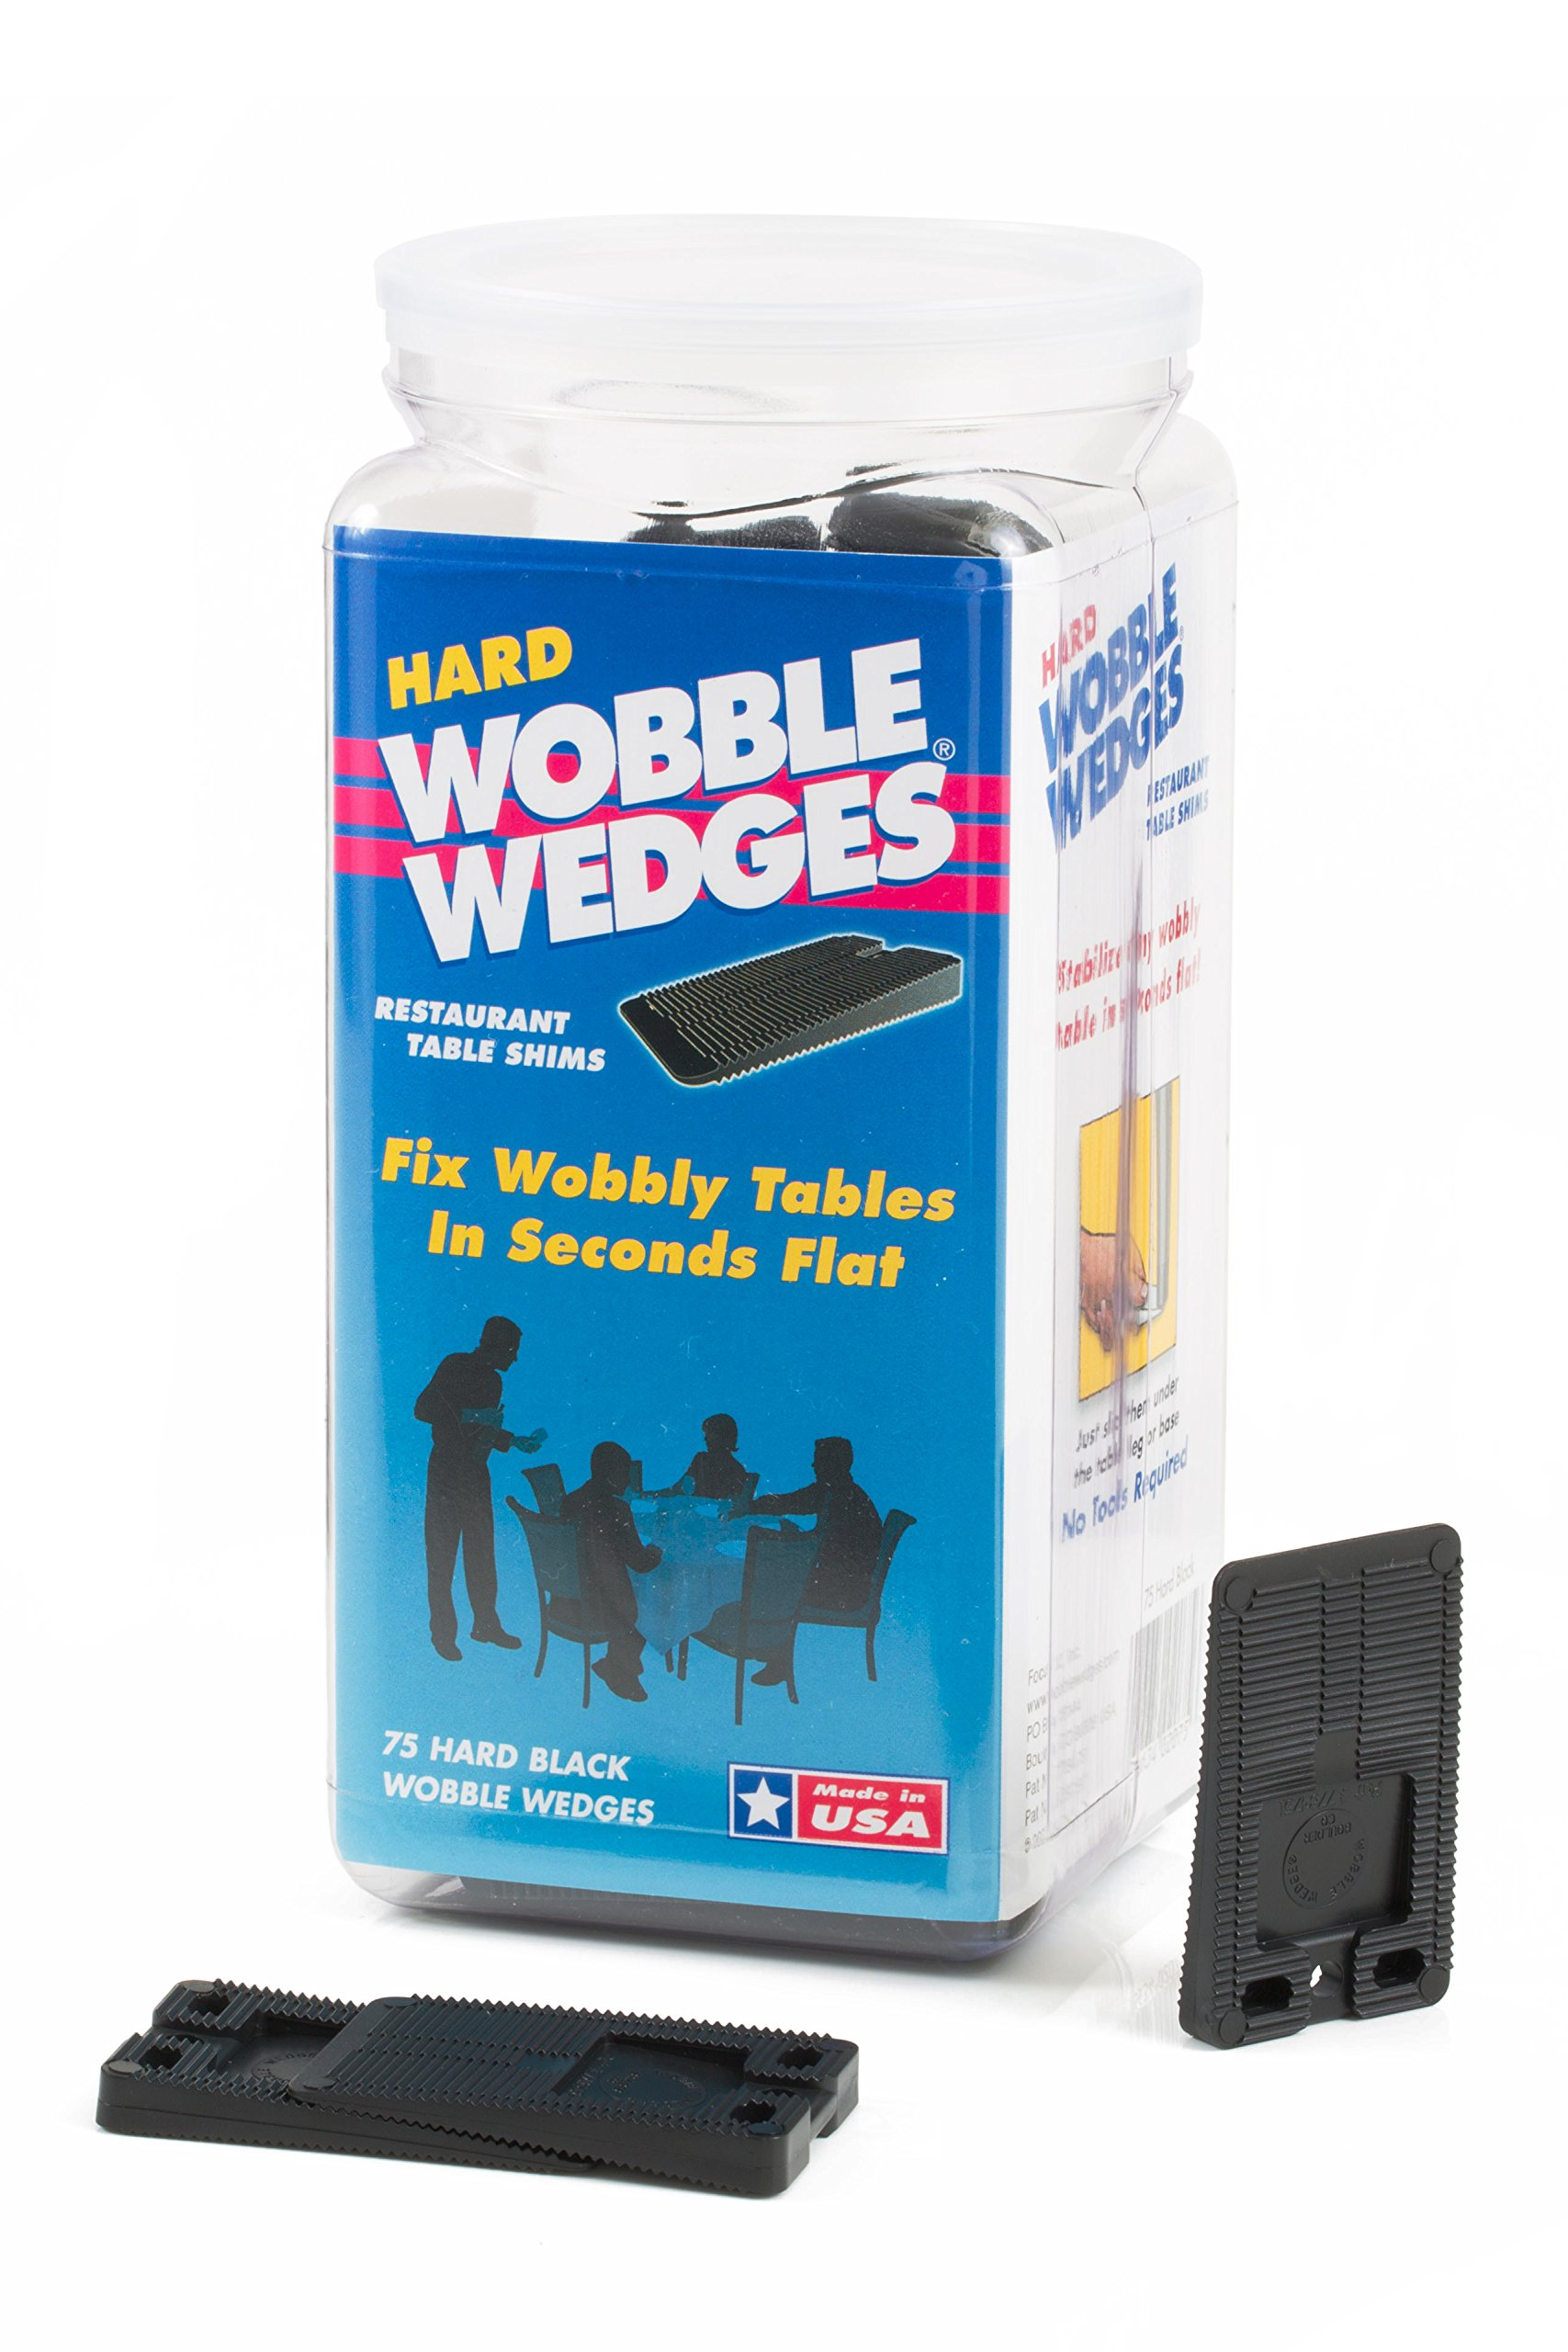 WOBBLE WEDGES Stackable Interlocking Multi-Purpose Leveling Shims - Hard Black Plastic - 75 Pack - Level Furniture, Restaurant Tables, Appliances, Plumbing Fixtures, Tables, Fountains, and More by WOBBLE WEDGES